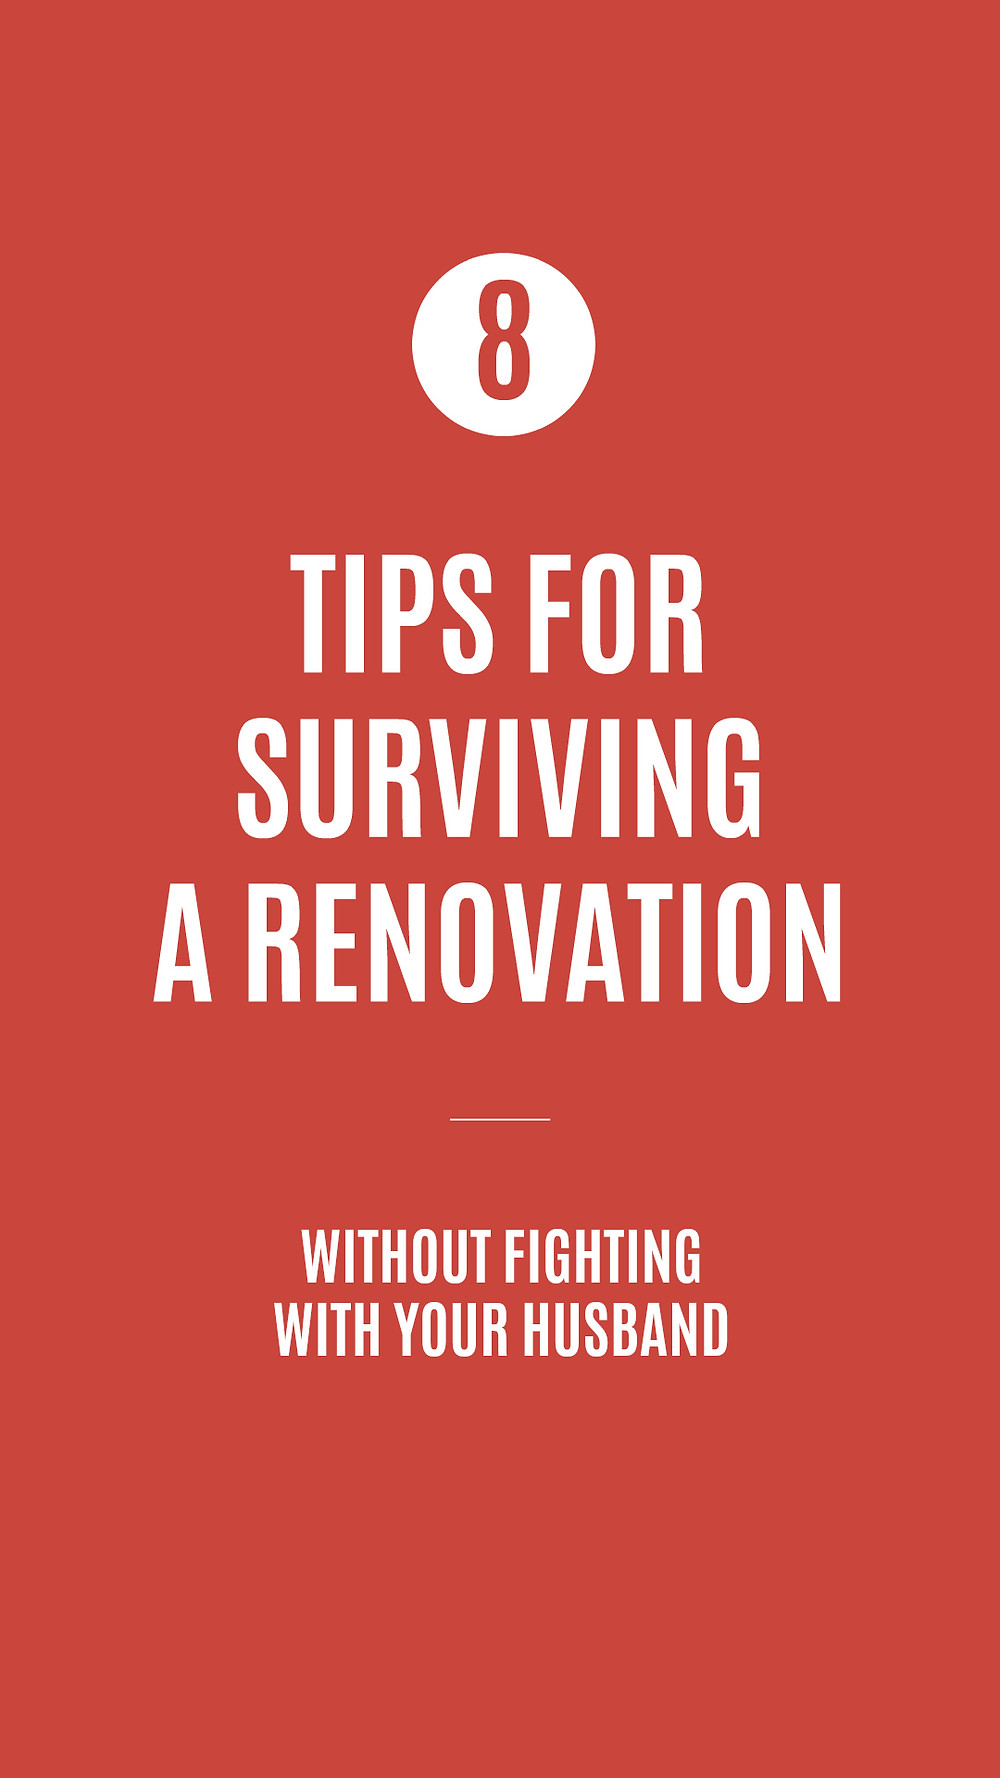 8 tips for surviving a renovation without fighting with your husband